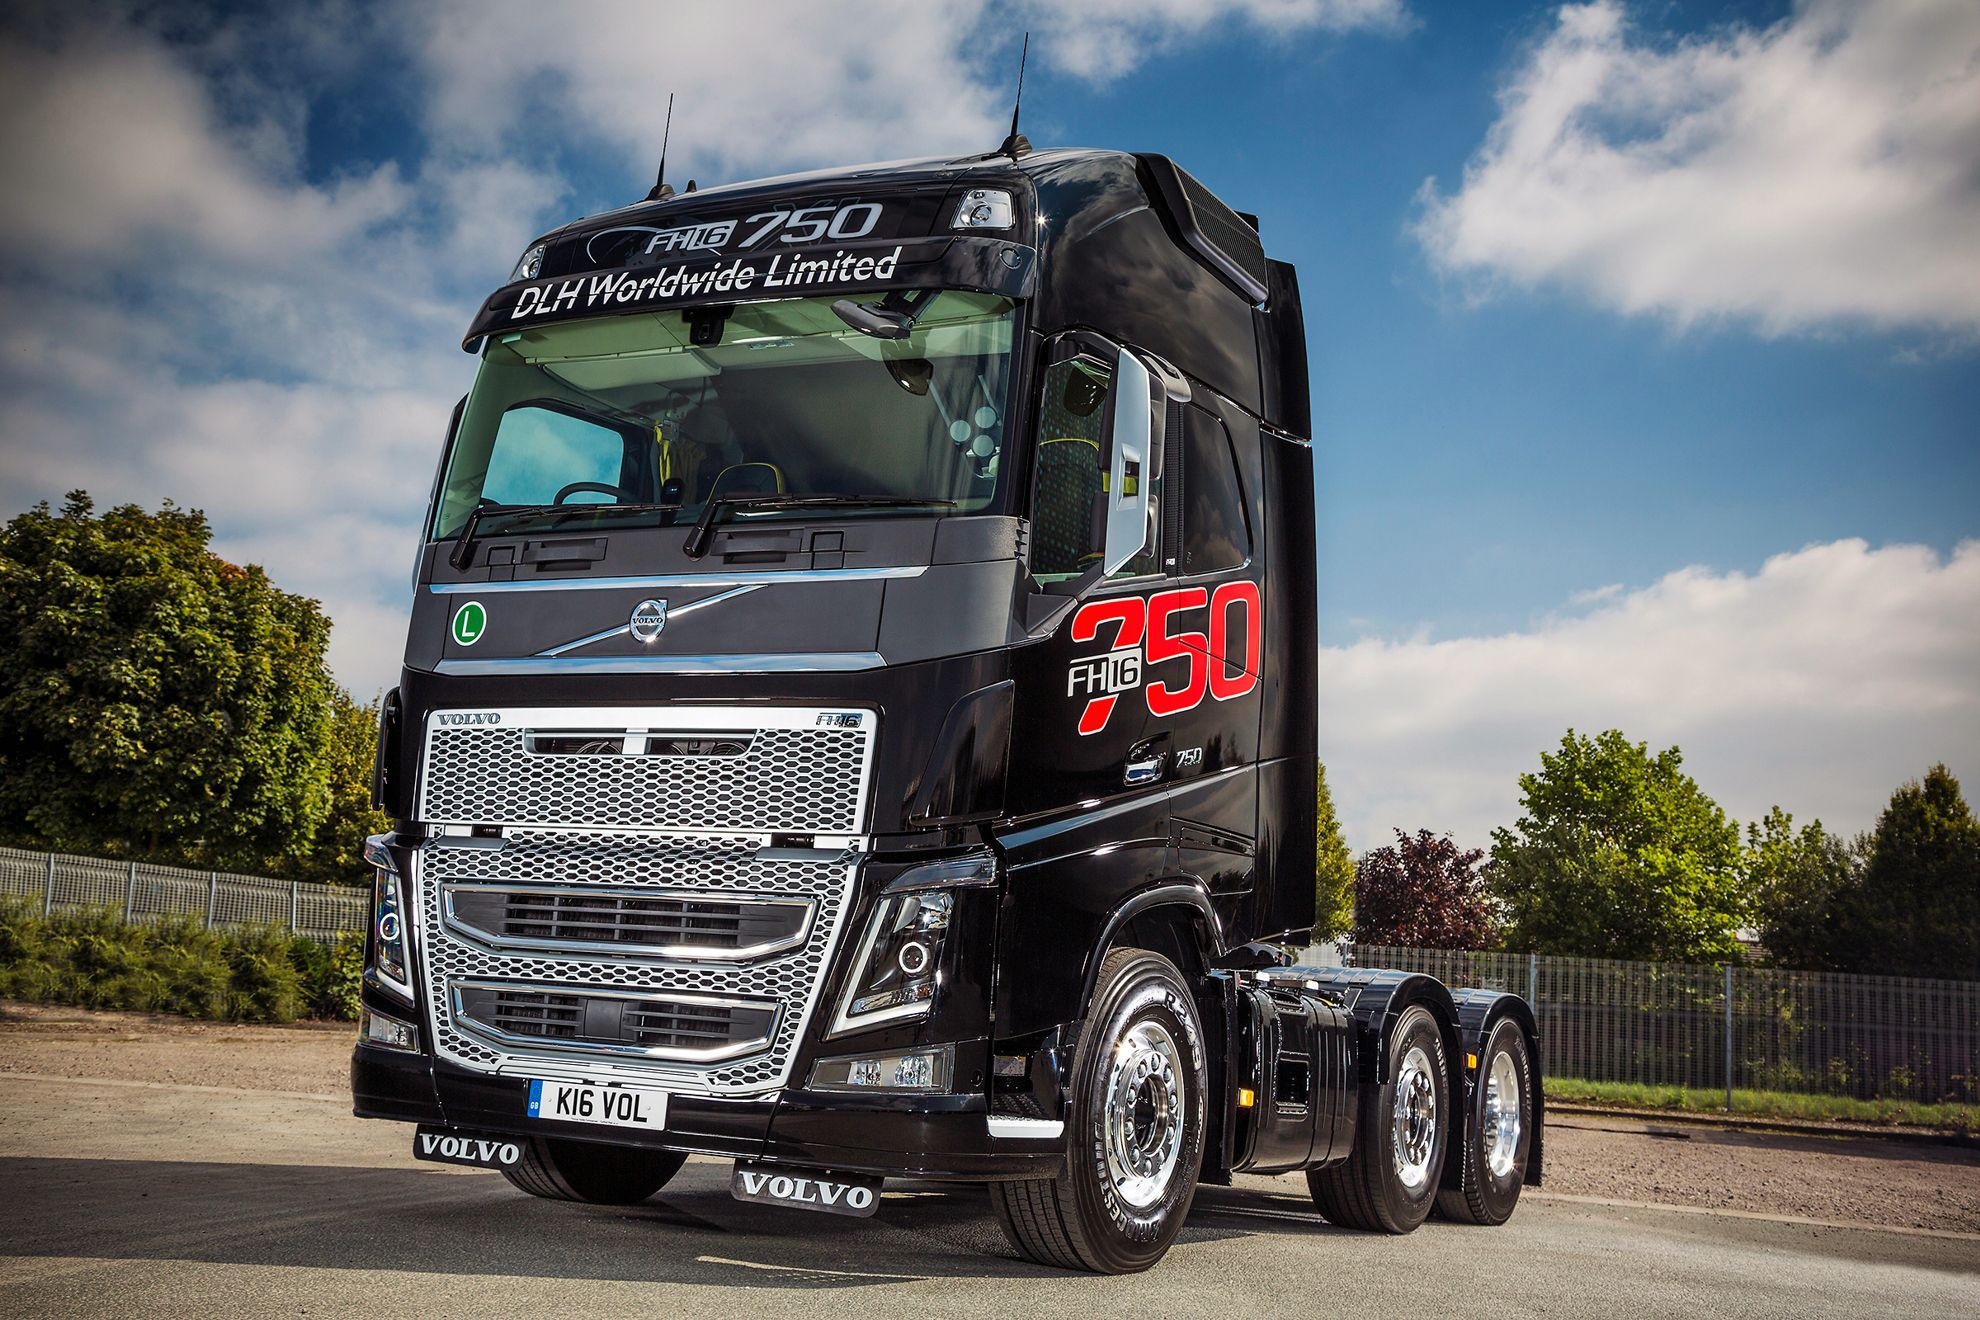 Volvo Fh16 750 Heavyweight Party